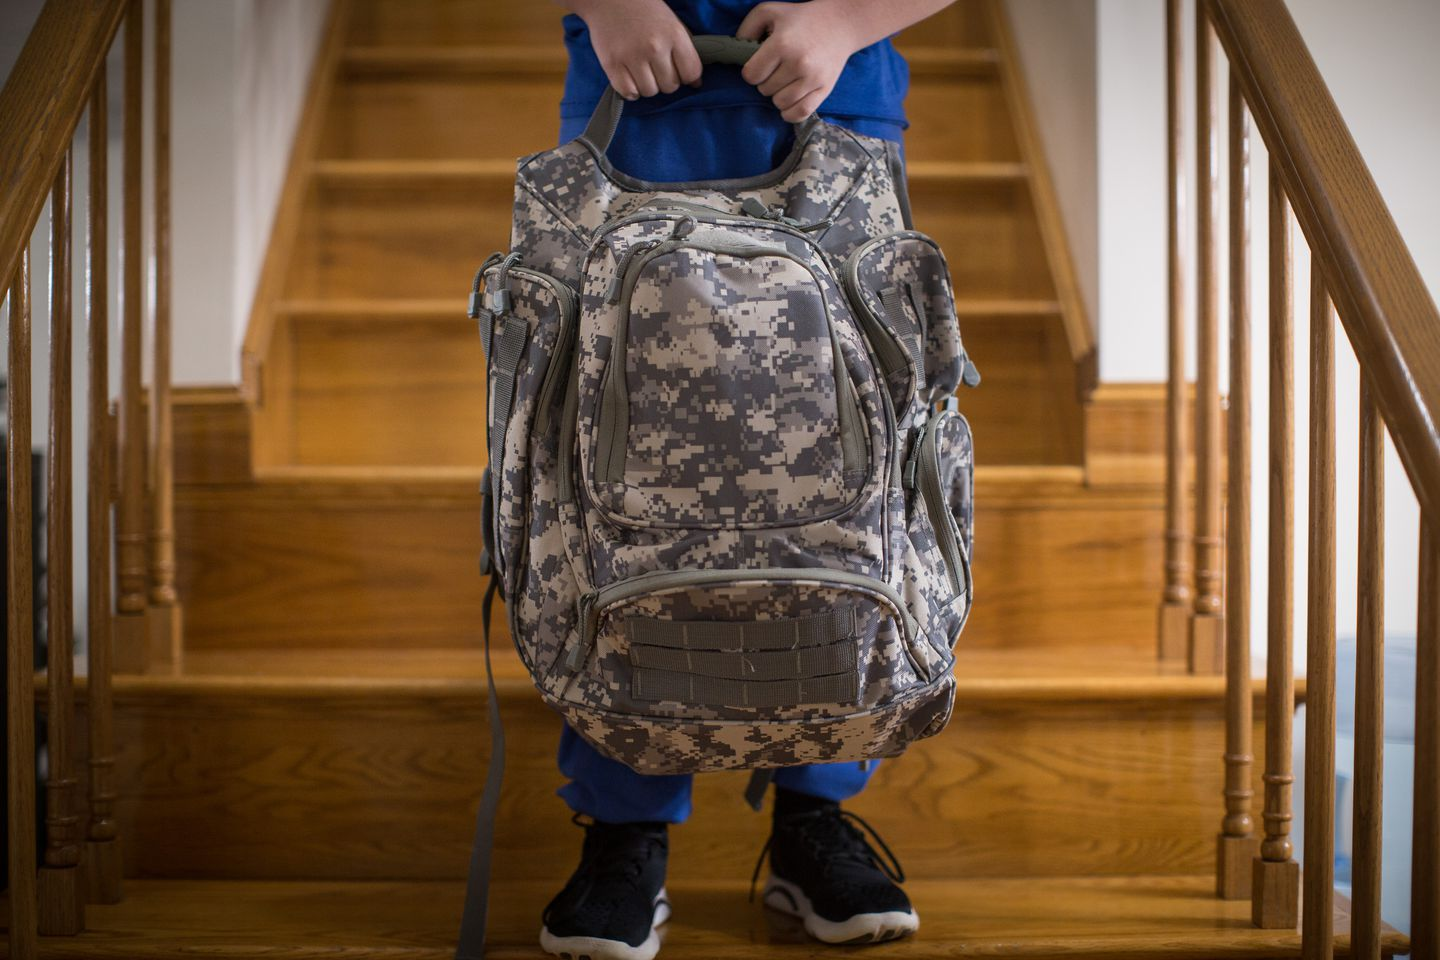 29038f62a4dd Nicholas Abreau posed for a portrait with the bullet resistant backpack his  father Charles bought him